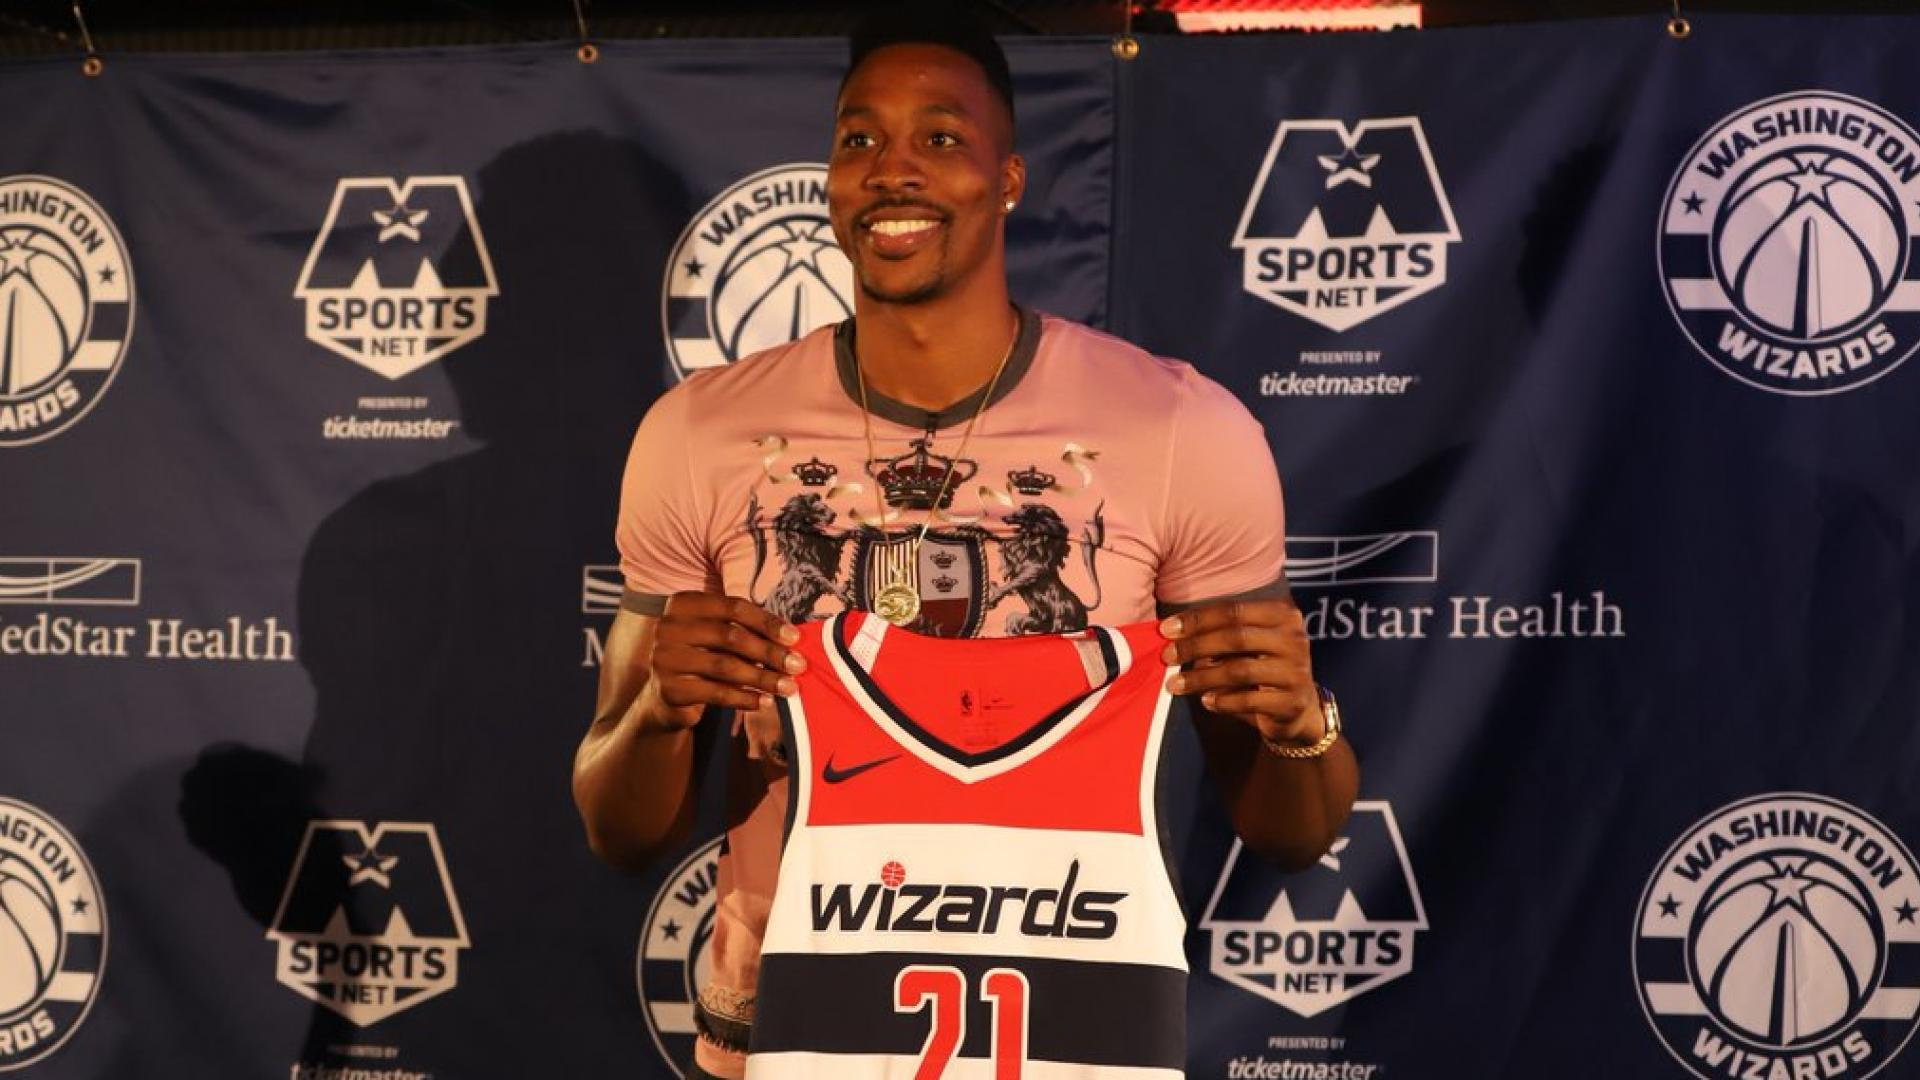 Wizards' Dwight Howard Reveals John Wall's Role In Rejecting Warriors